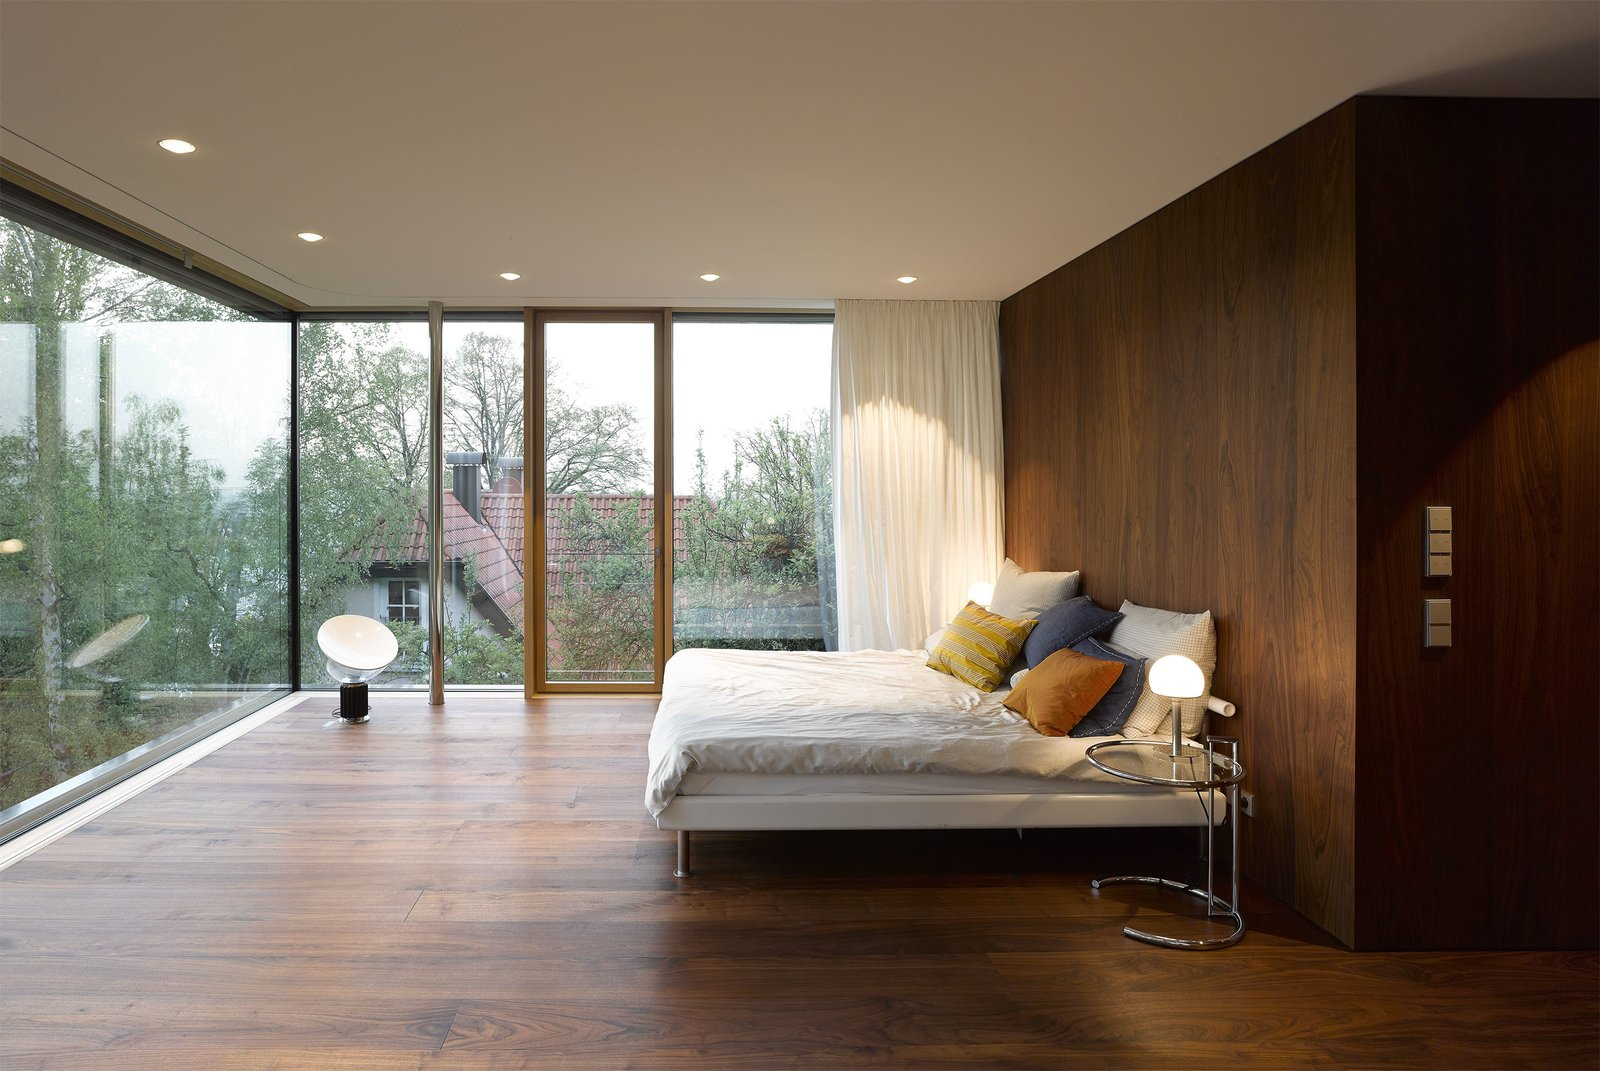 Bedroom, Night Stands, Table Lighting, Floor Lighting, Bed, Dark Hardwood Floor, Lamps, and Recessed Lighting Light streams into the bedroom through walls of floor-to-ceiling glass. The windows are triple-glazed, creating a tight, eco-friendly seal.  Renovations from An Uninspired Home in Germany Gets a Bright, Eco-Friendly Update